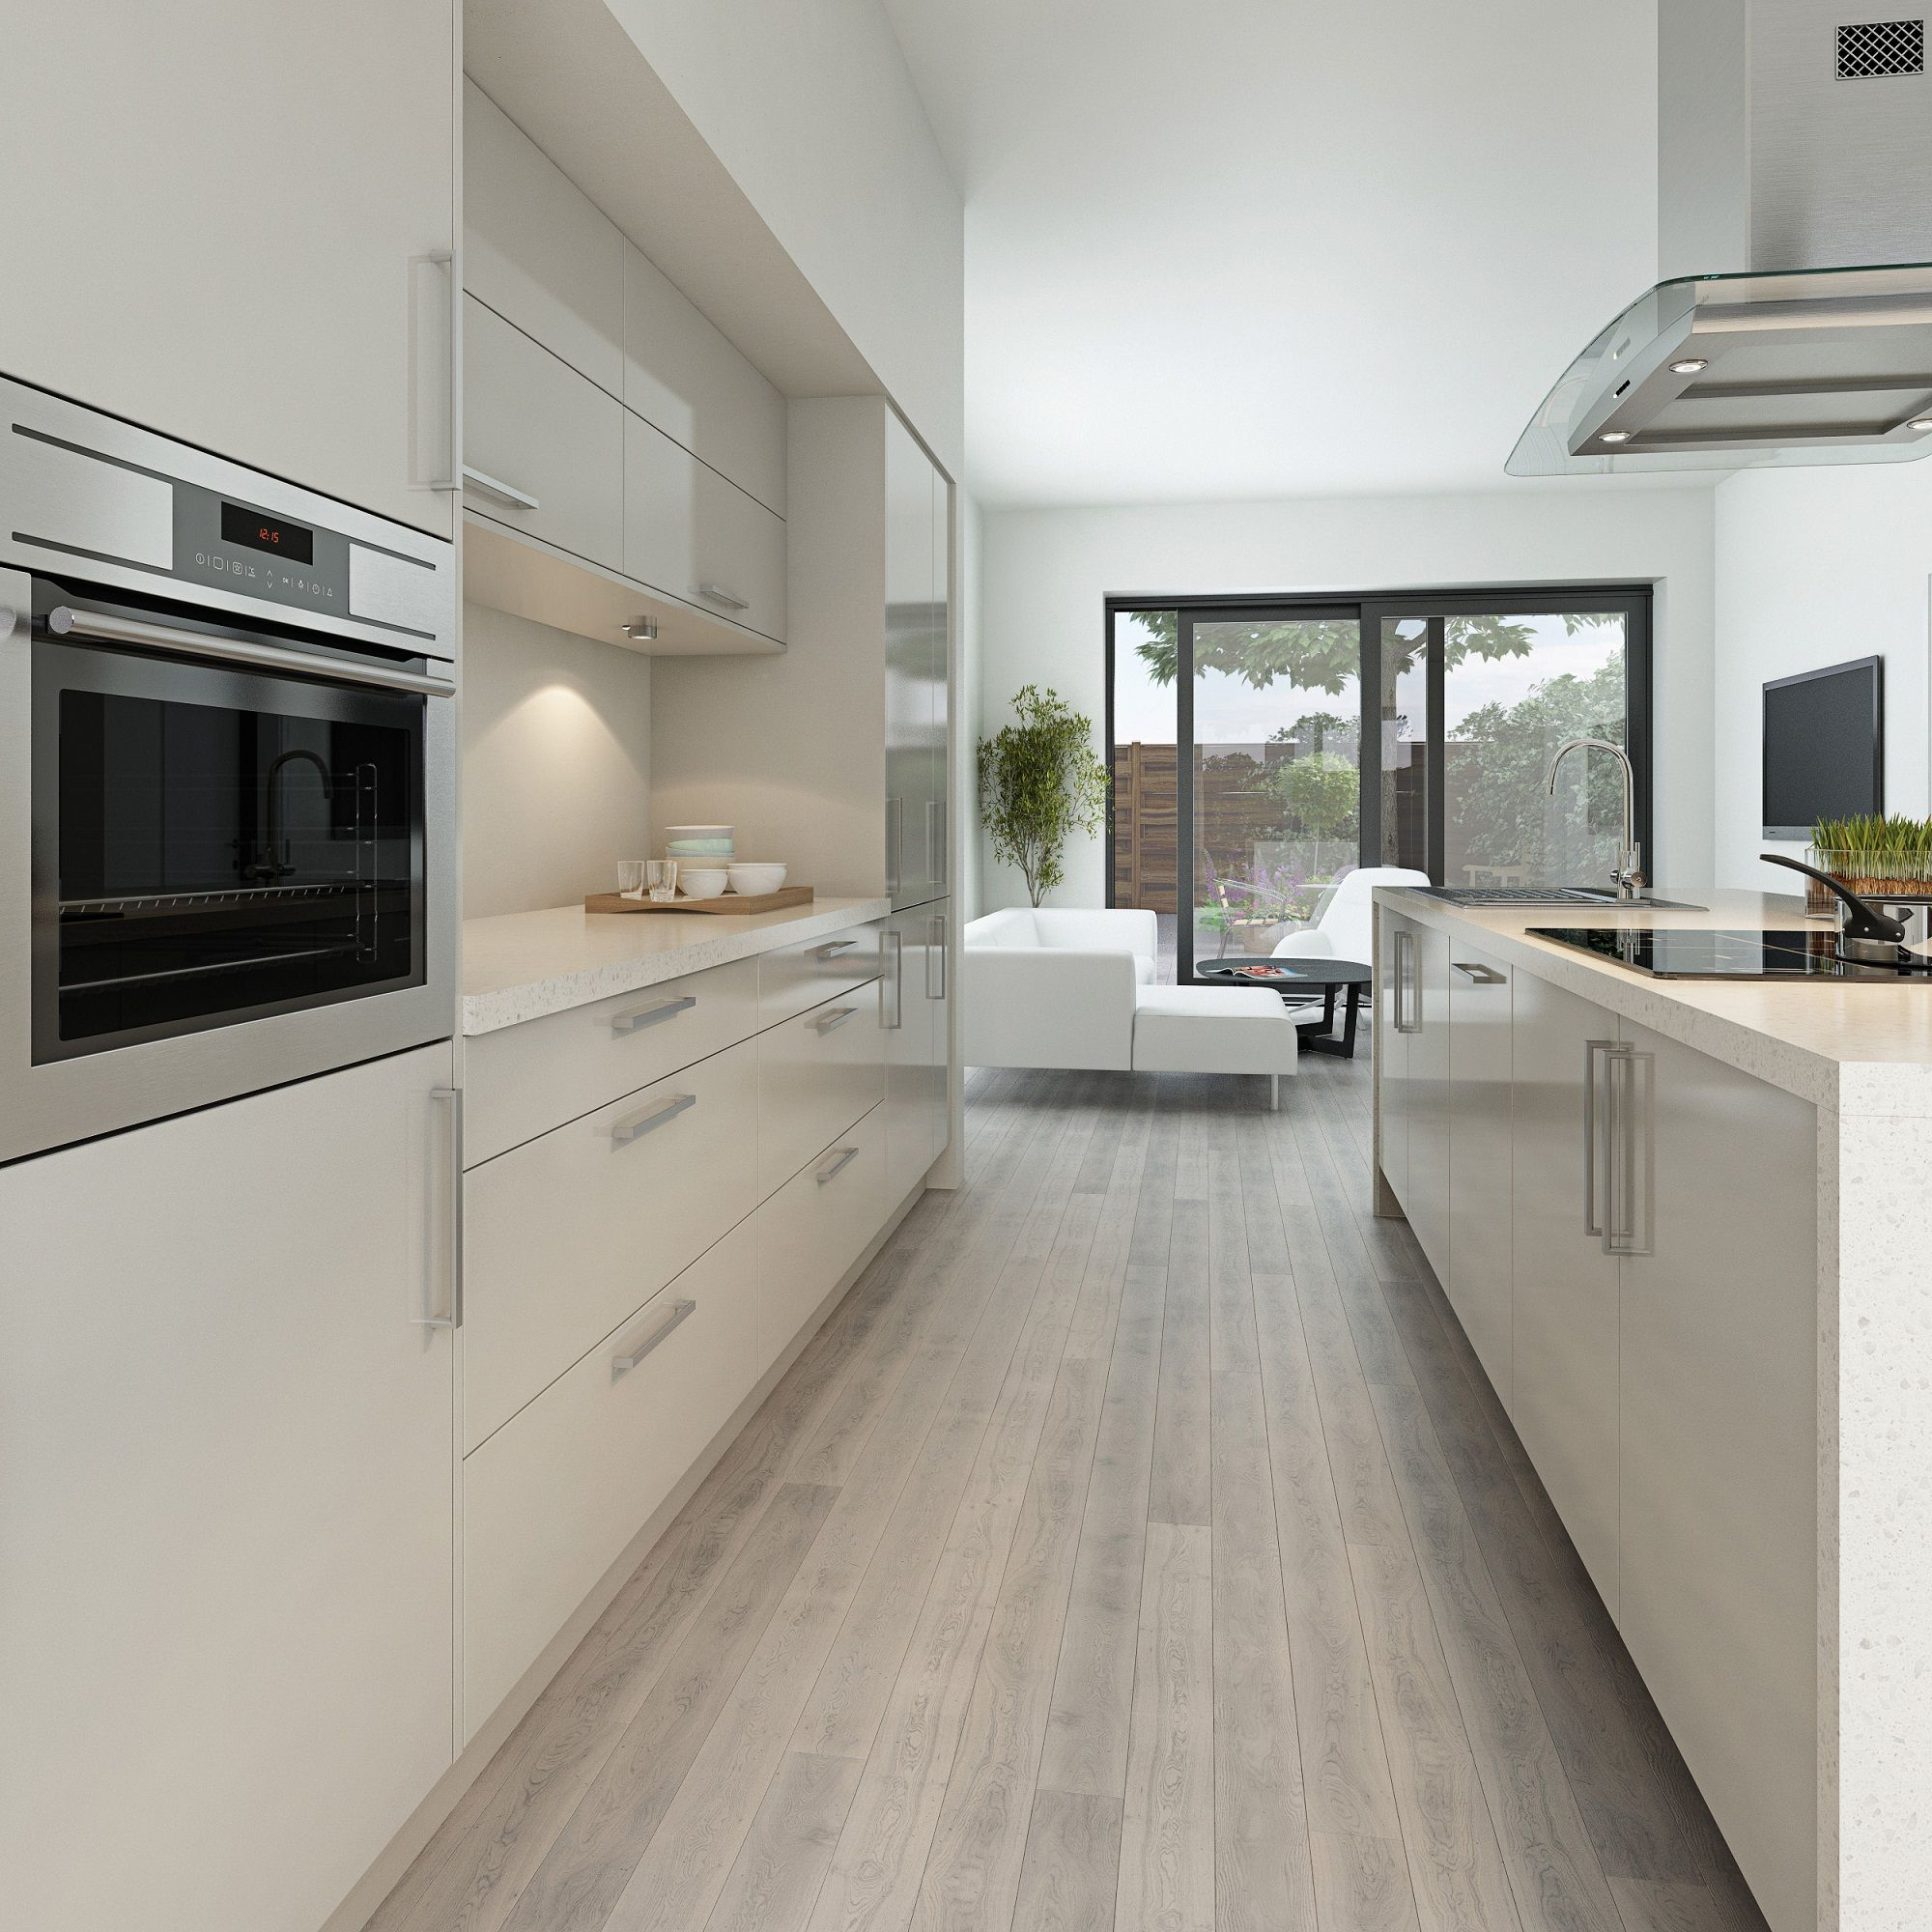 Gloss Kitchen Floor Tiles Maida Gloss Light Grey Is One Of Our Definitive Modern Kitchens